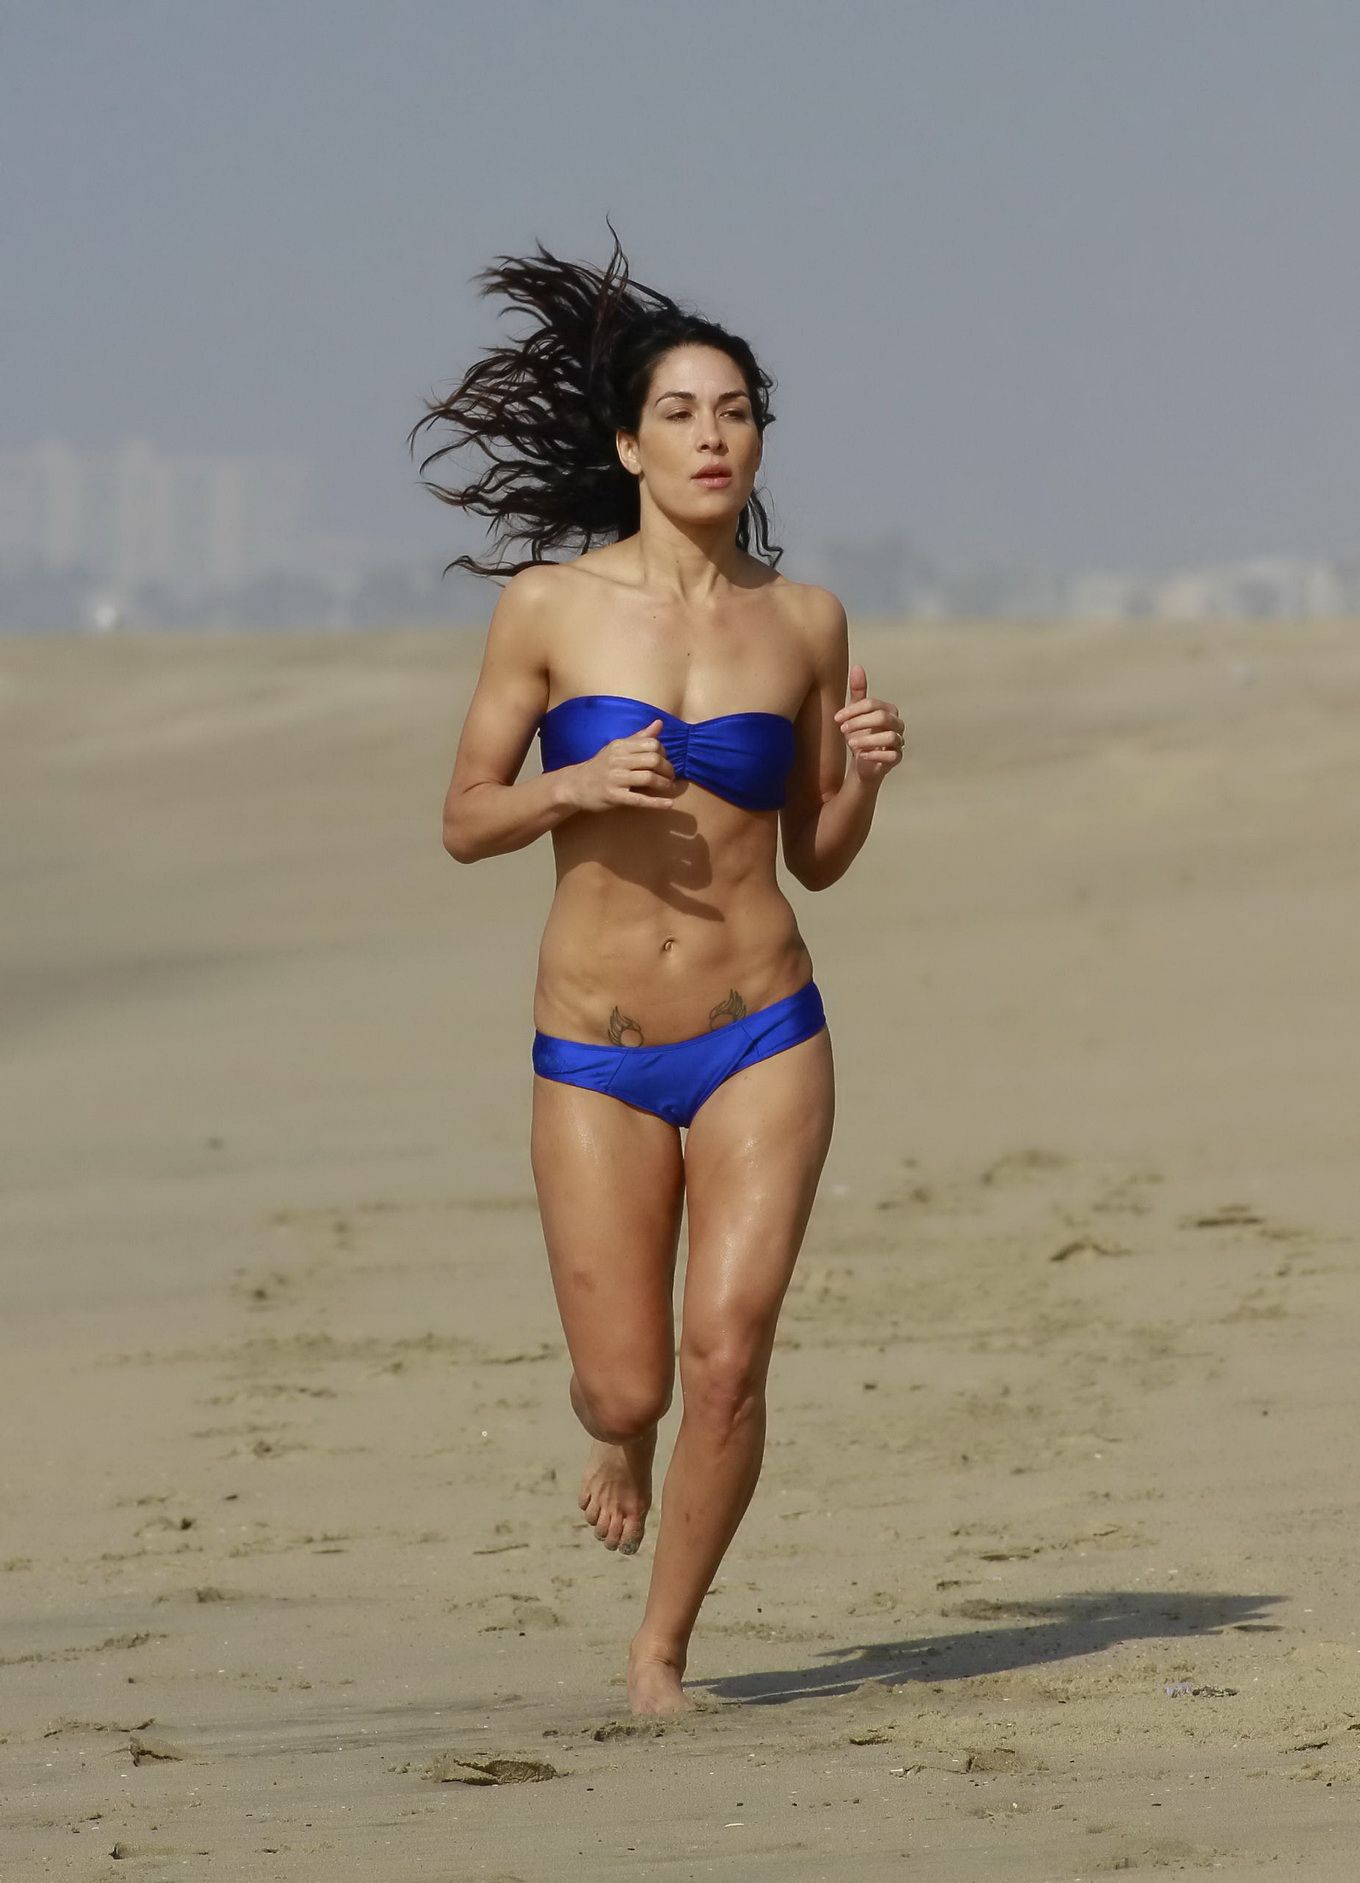 brie bella and nikki bella bikini beach in la video download